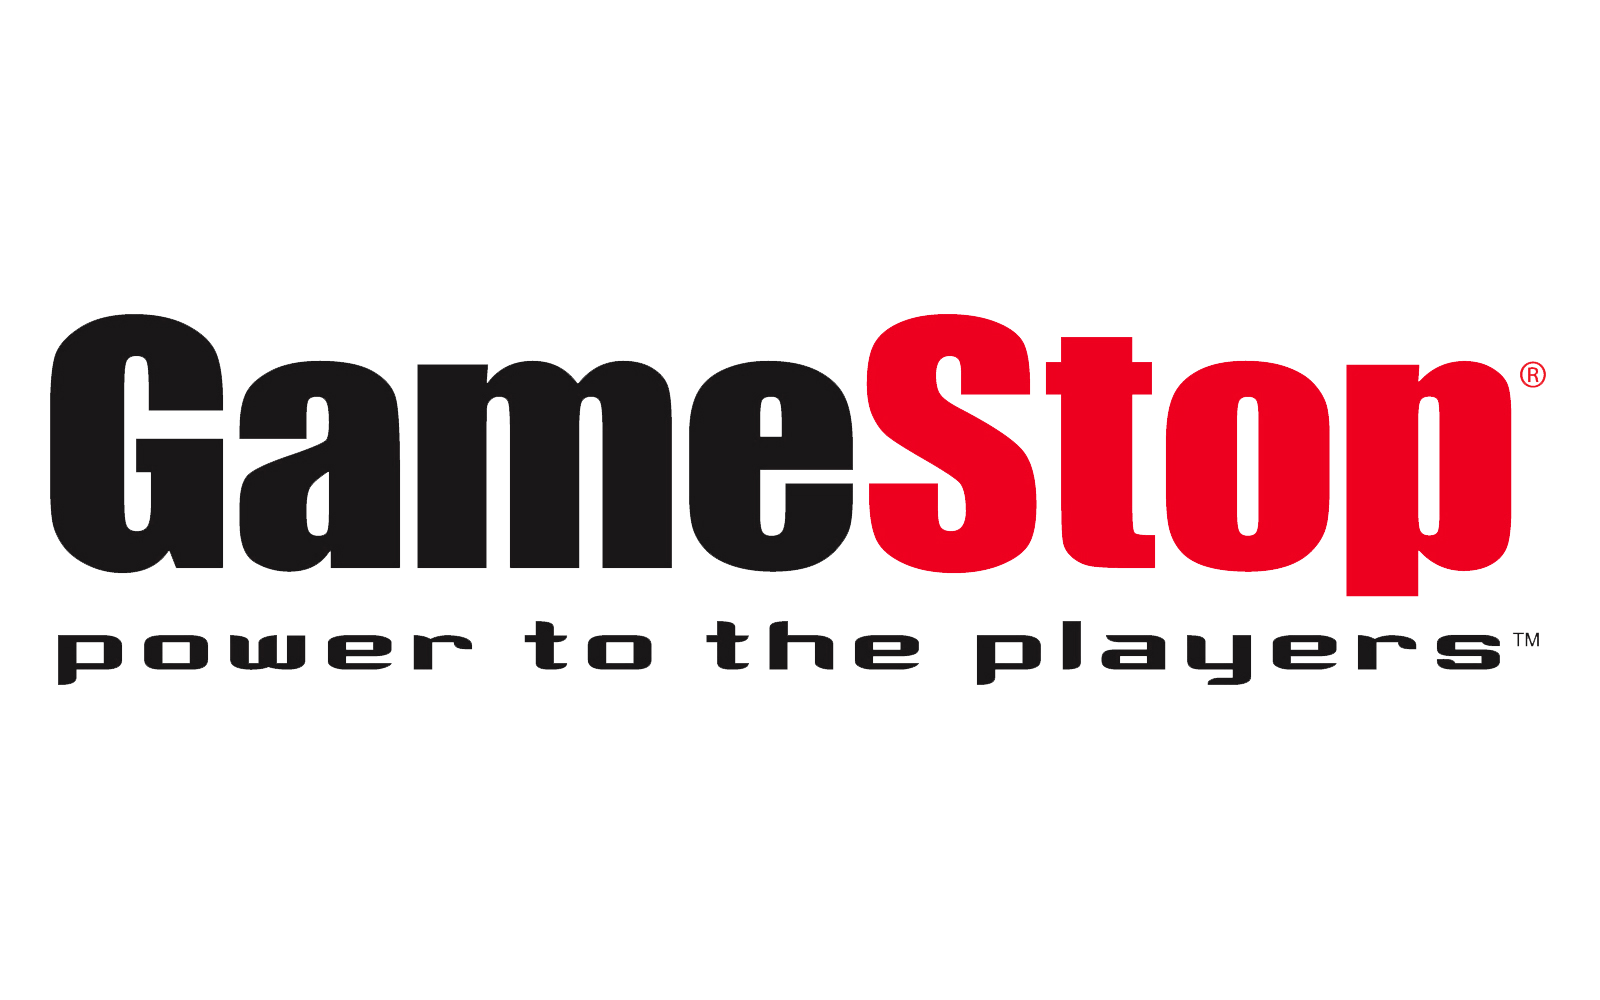 GameStop Lets You Buy Products from Them That You Could Buy from Home